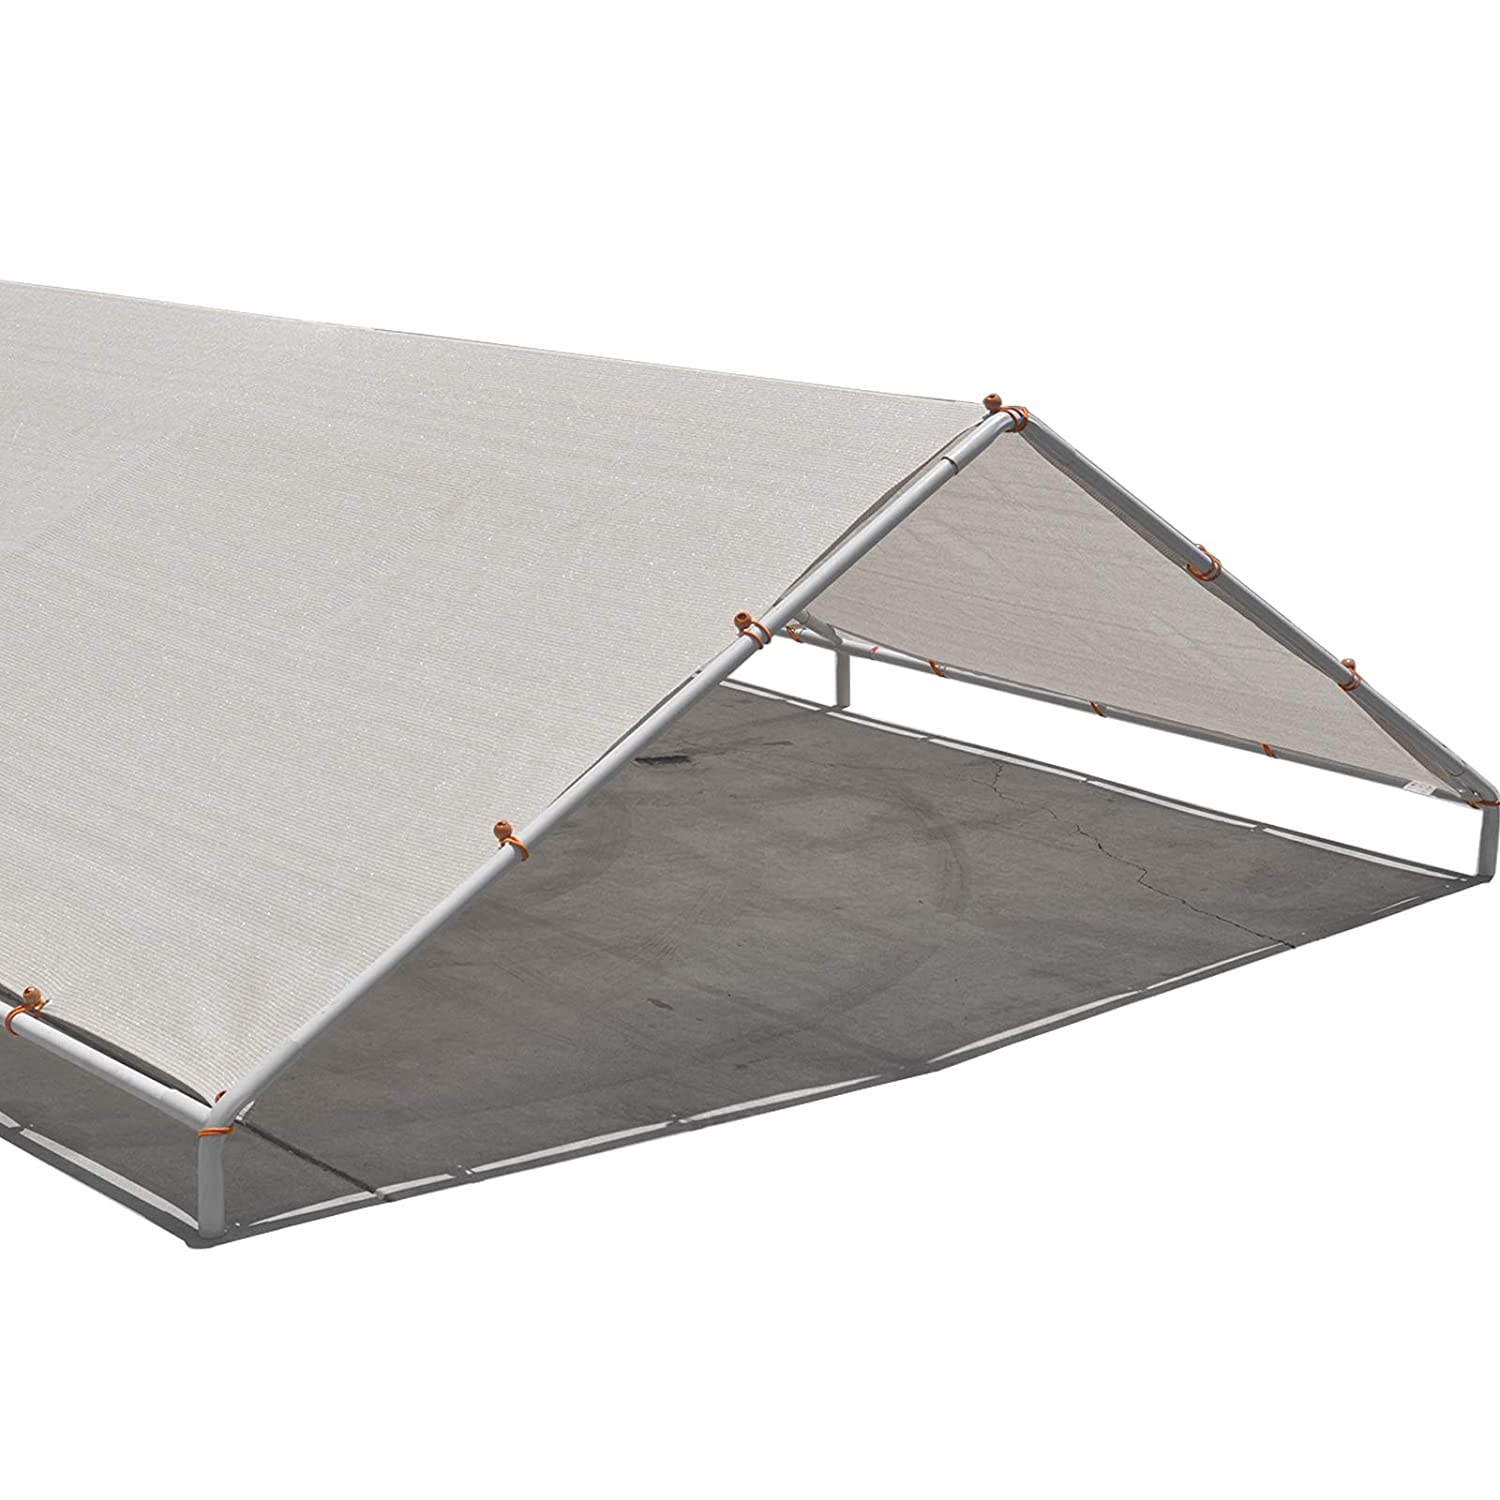 Alion Home Carport Canopy Replacement Permeable Sun Shade Cover High Peak (Frame Not Included) (12' X 16' fits 10' x 16' Frame, Beige) AH-CCRBG1216